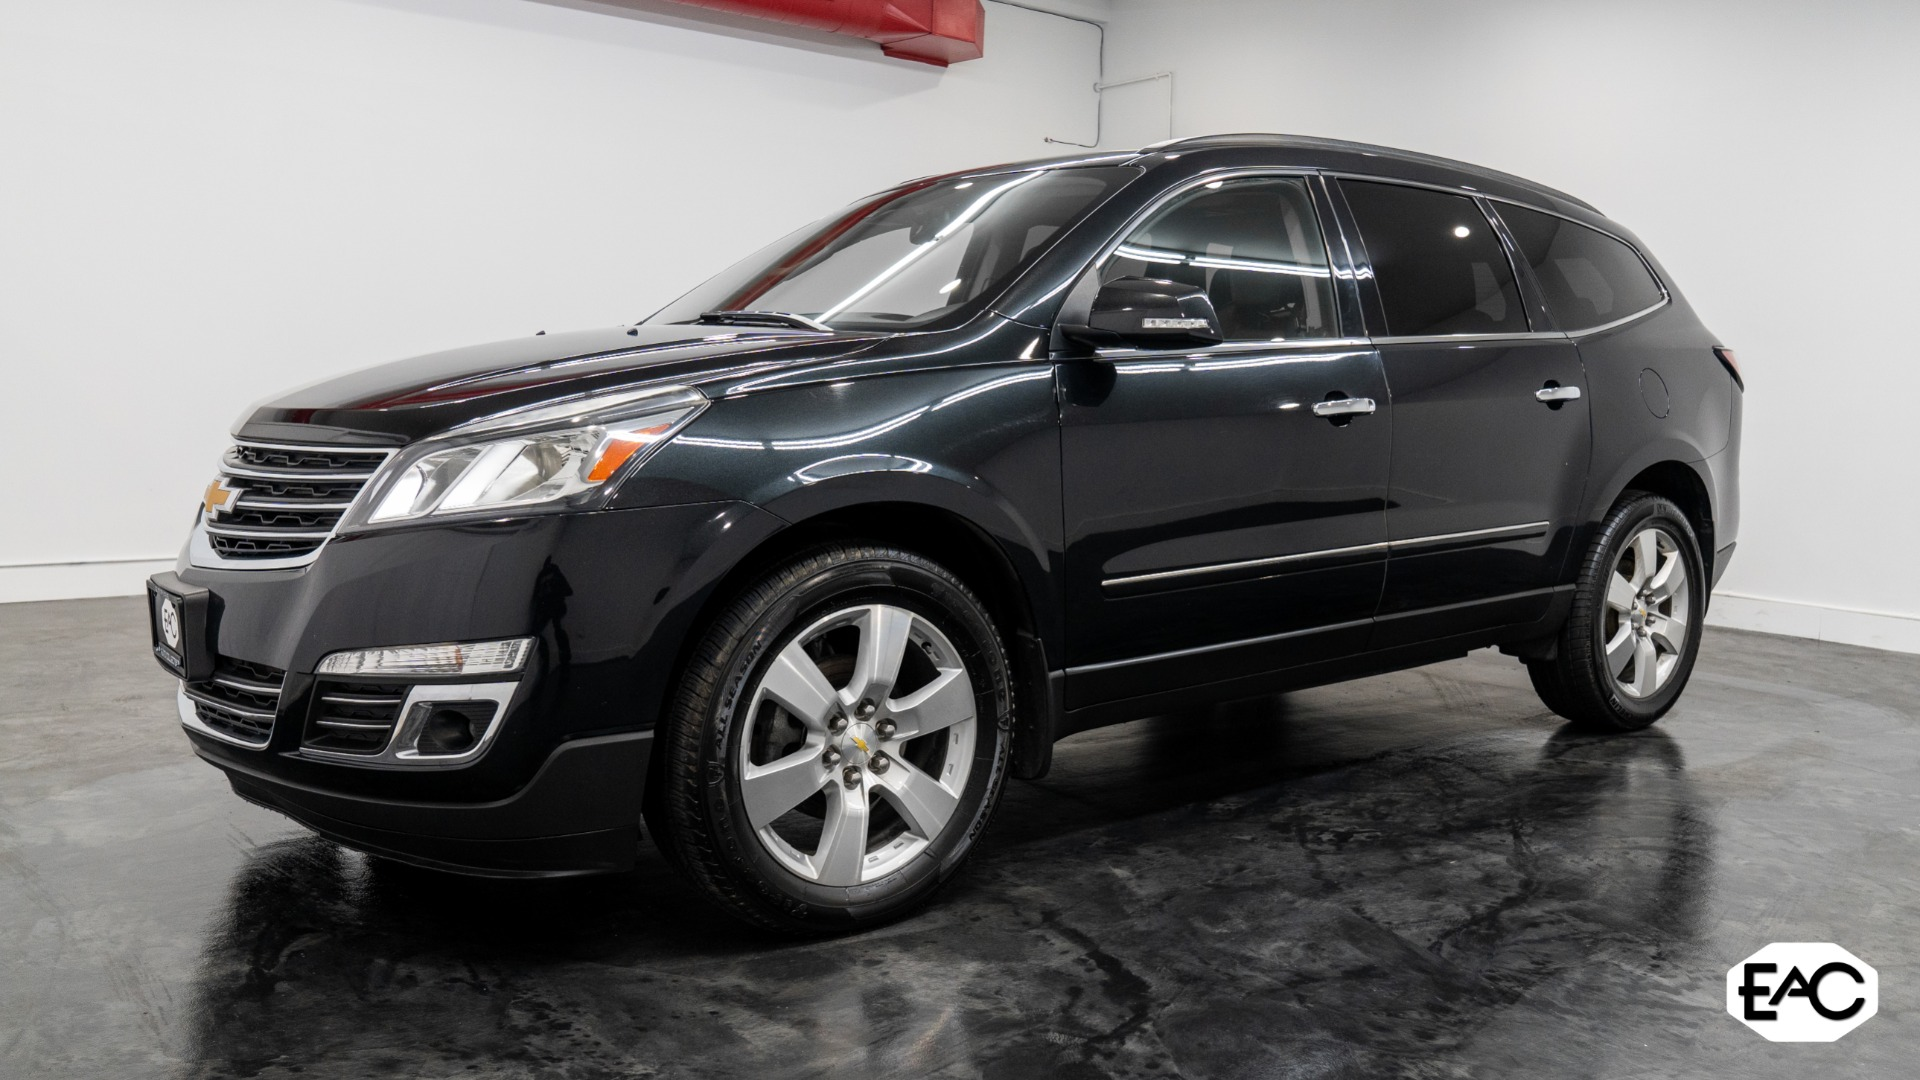 Used 2014 Chevrolet Traverse LTZ for sale $16,990 at Empire Auto Collection in Warren MI 48091 1